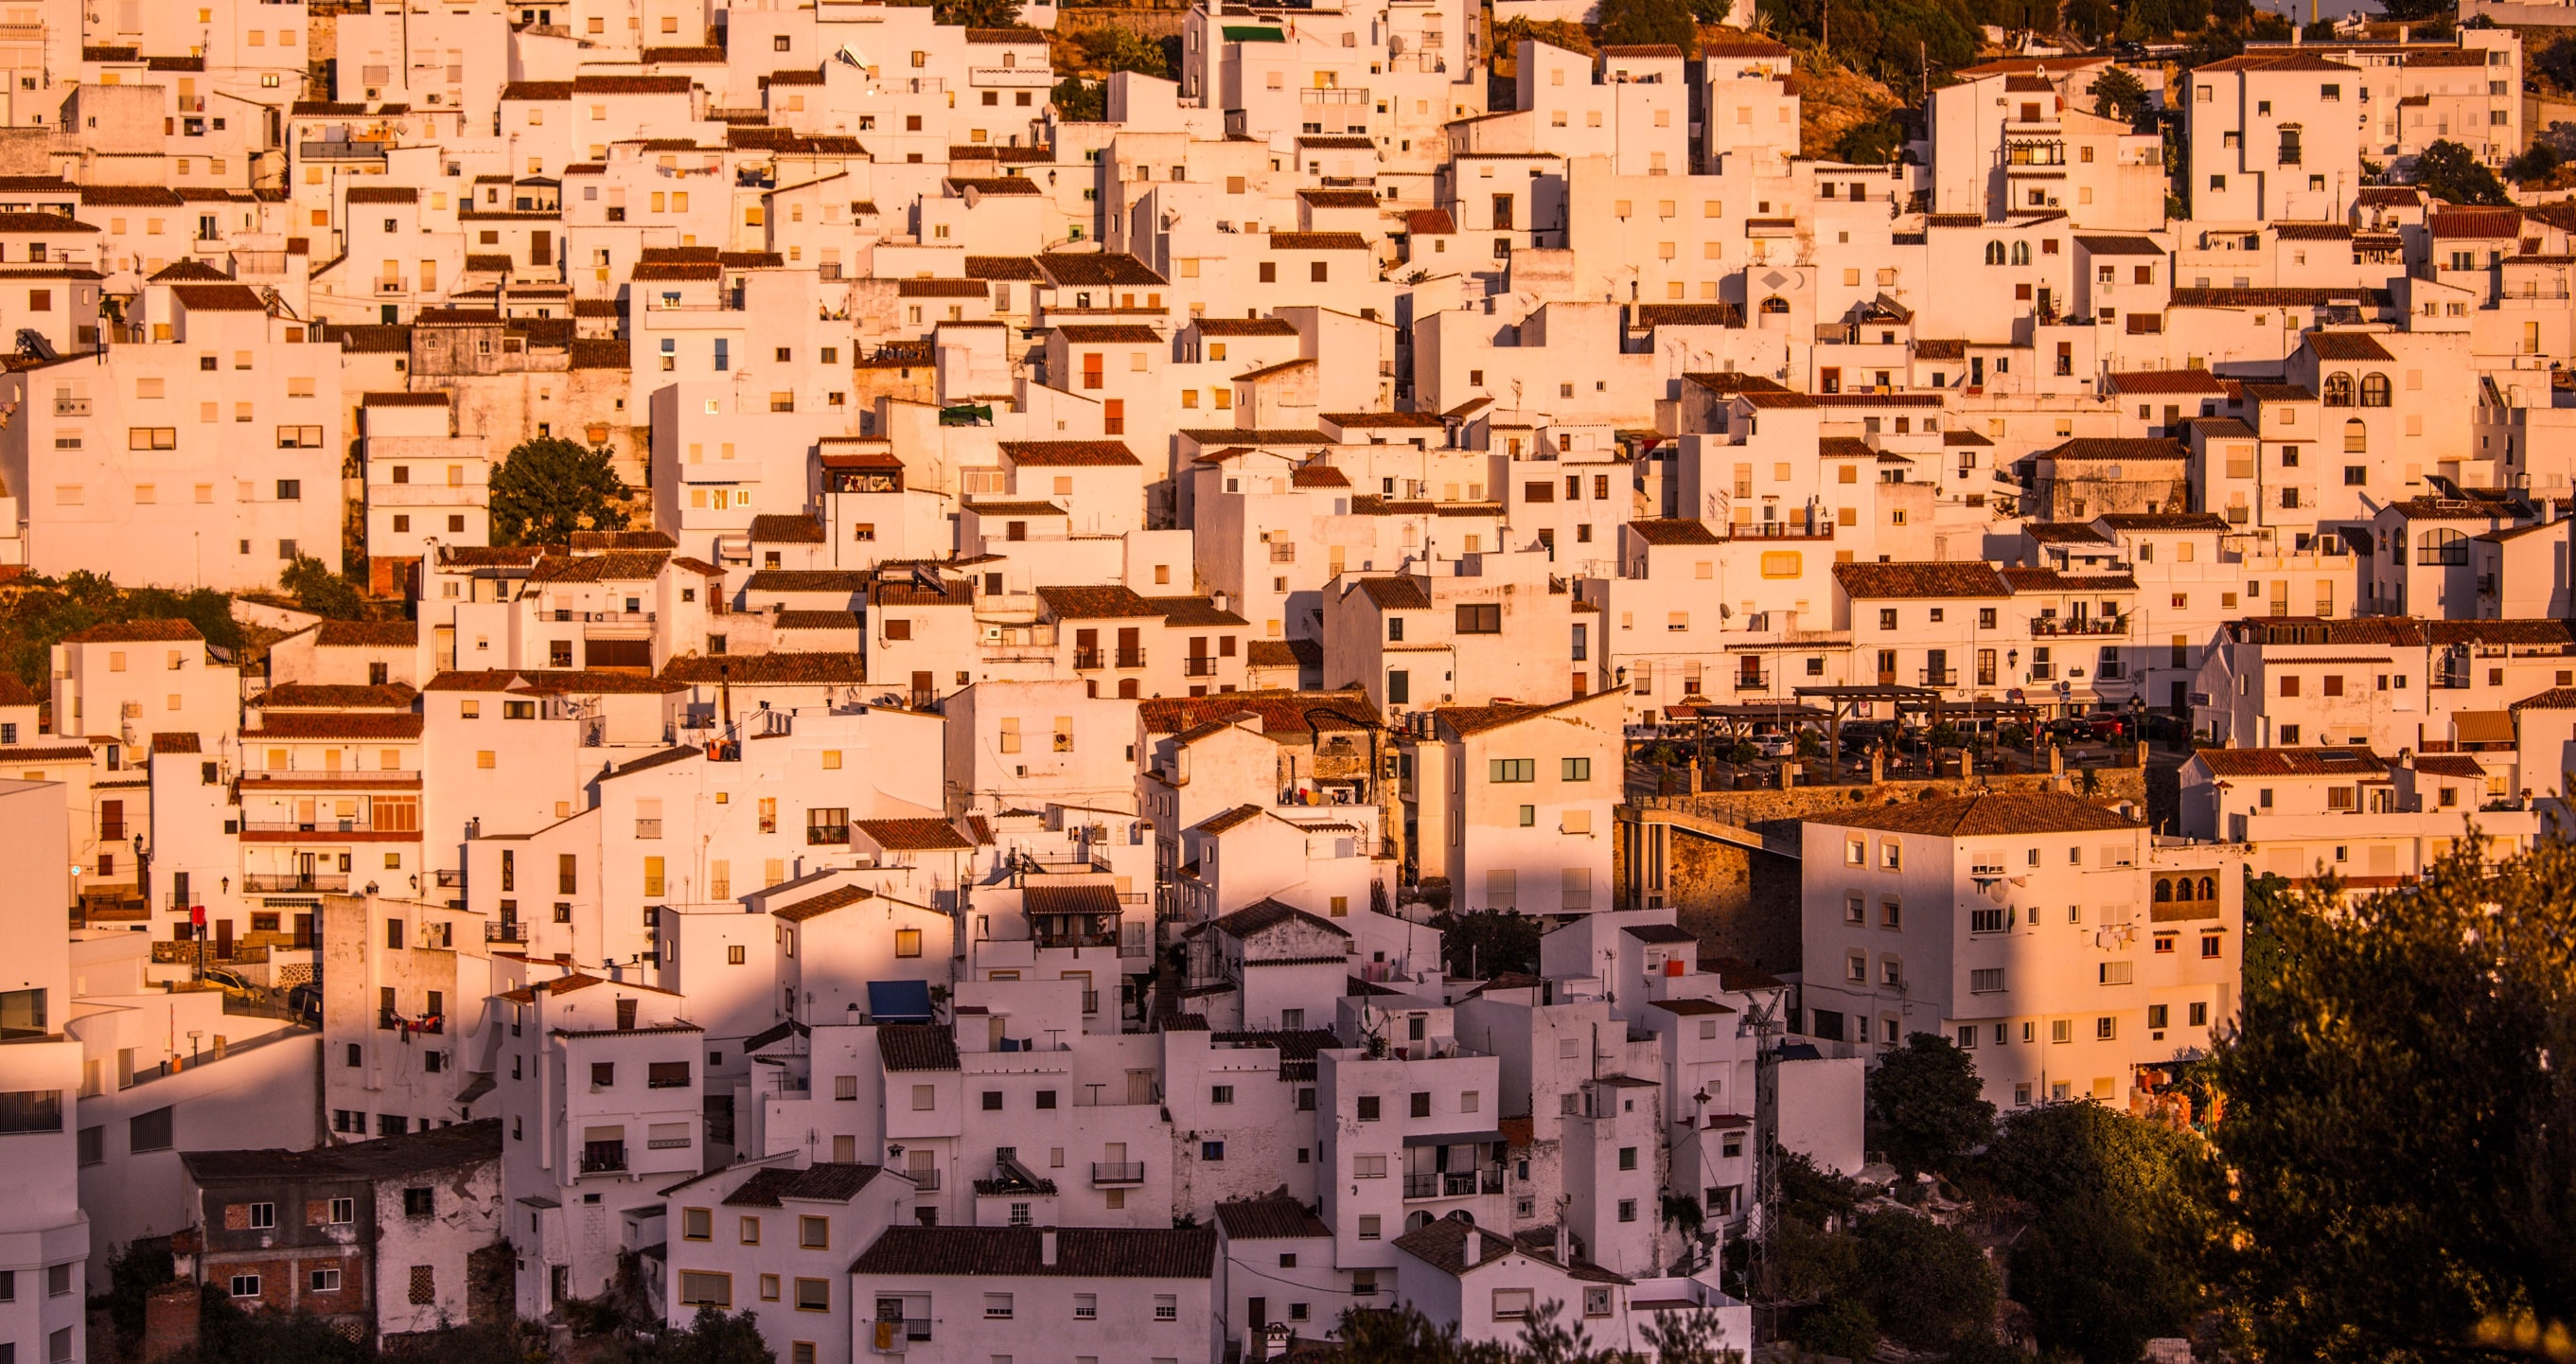 white buildings on hill